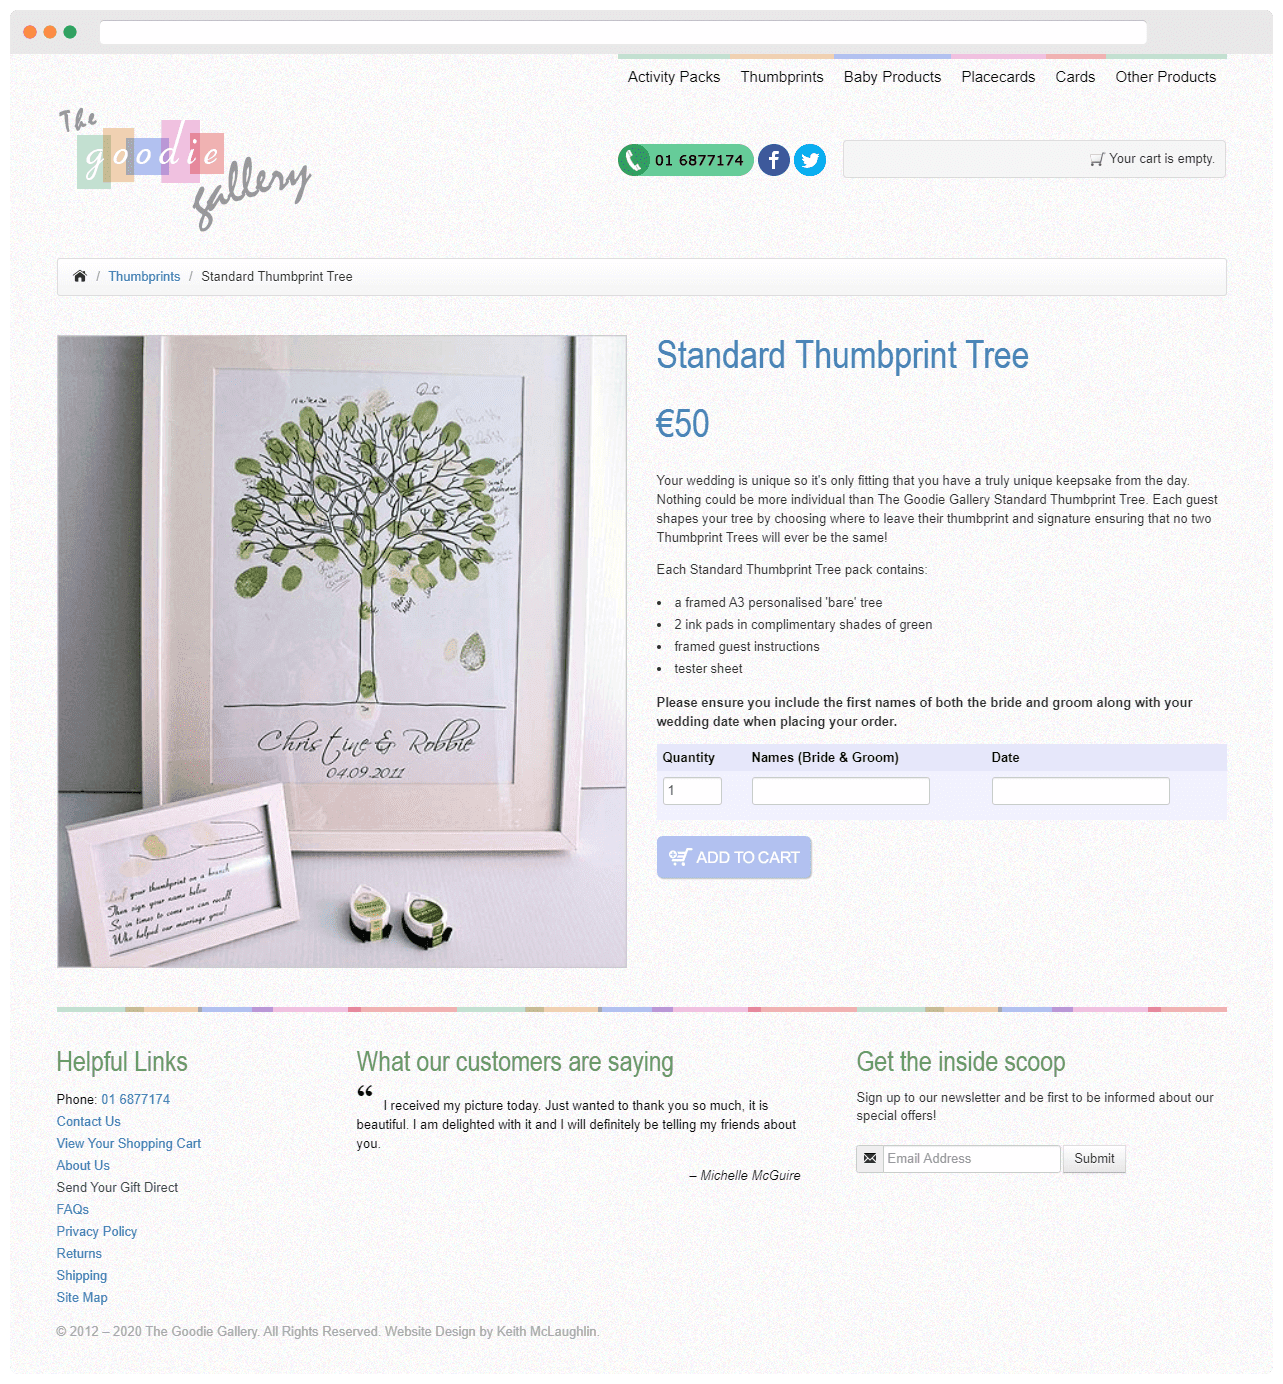 The Goodie Gallery Thumbprints Page